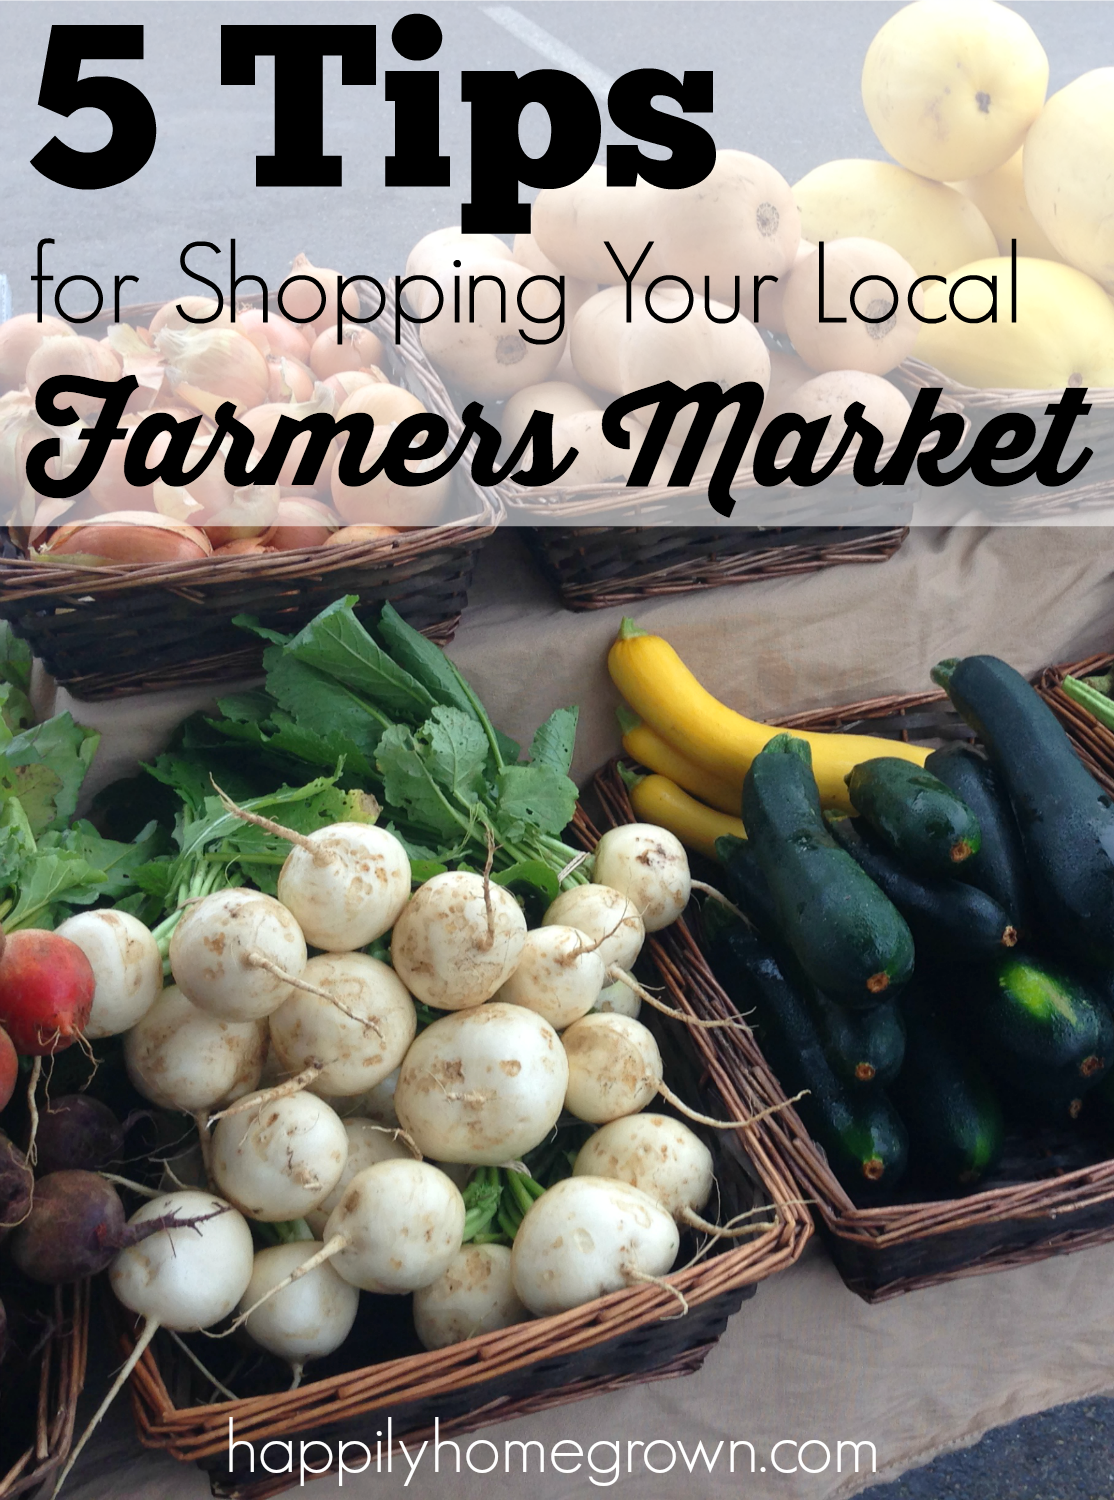 The next best thing to growing your own food is supporting your local farmers. Here are 5 tips for shopping your local farmers' market.